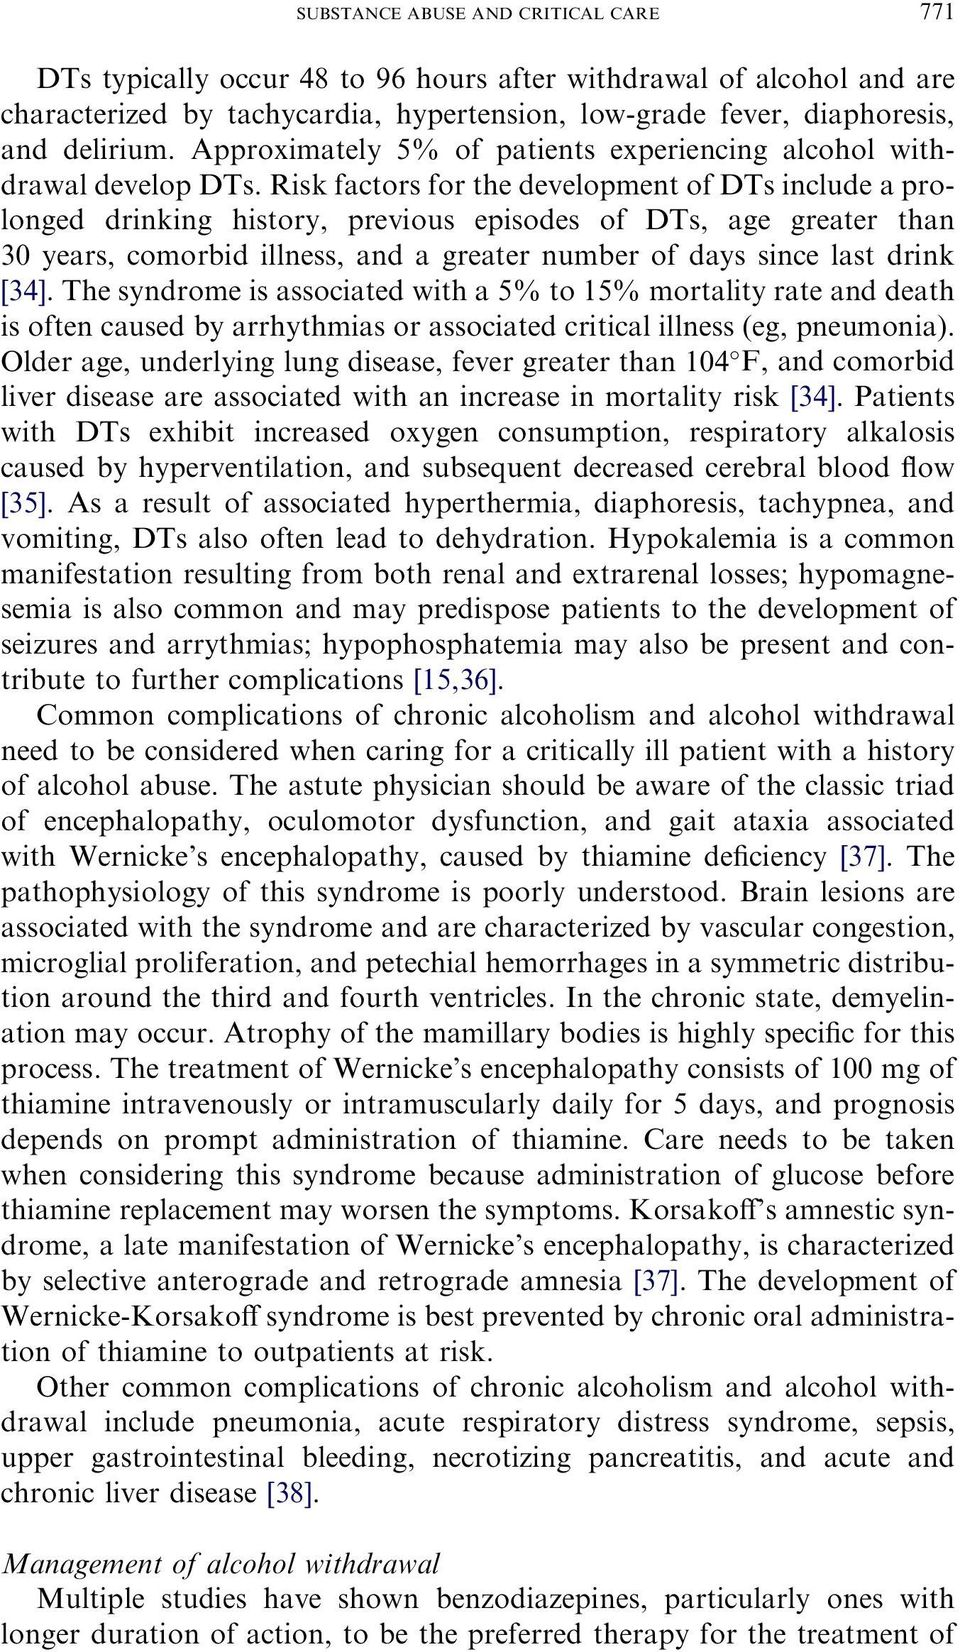 Risk factors for the development of DTs include a prolonged drinking history, previous episodes of DTs, age greater than 30 years, comorbid illness, and a greater number of days since last drink [34].